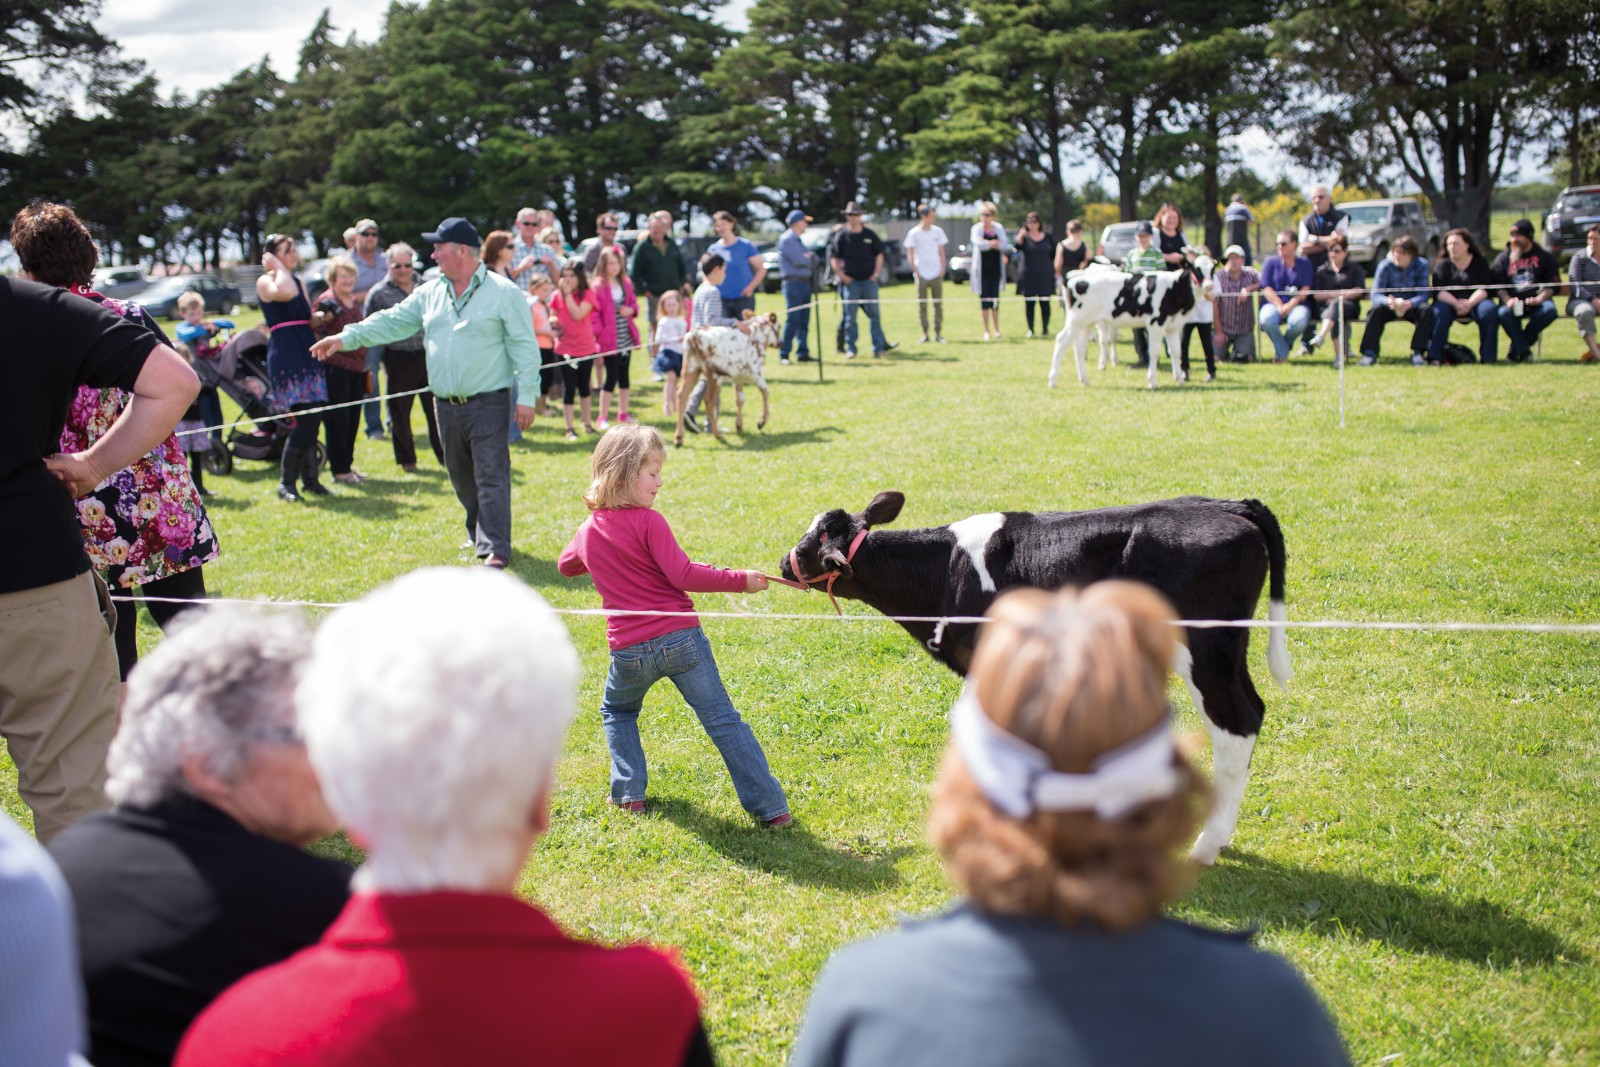 A competitor pulls her calf into the ring during the ring-craft category at the South Featherston School pet day. Kahutara School principal Clare Crawford estimates that 90 per cent of Kahutara School's students have parents who are involved in the farming industry. Calving and lambing season is a busy time for farming families, and pet days provide the opportunity for the community to take time out, get together and support their young competitors.